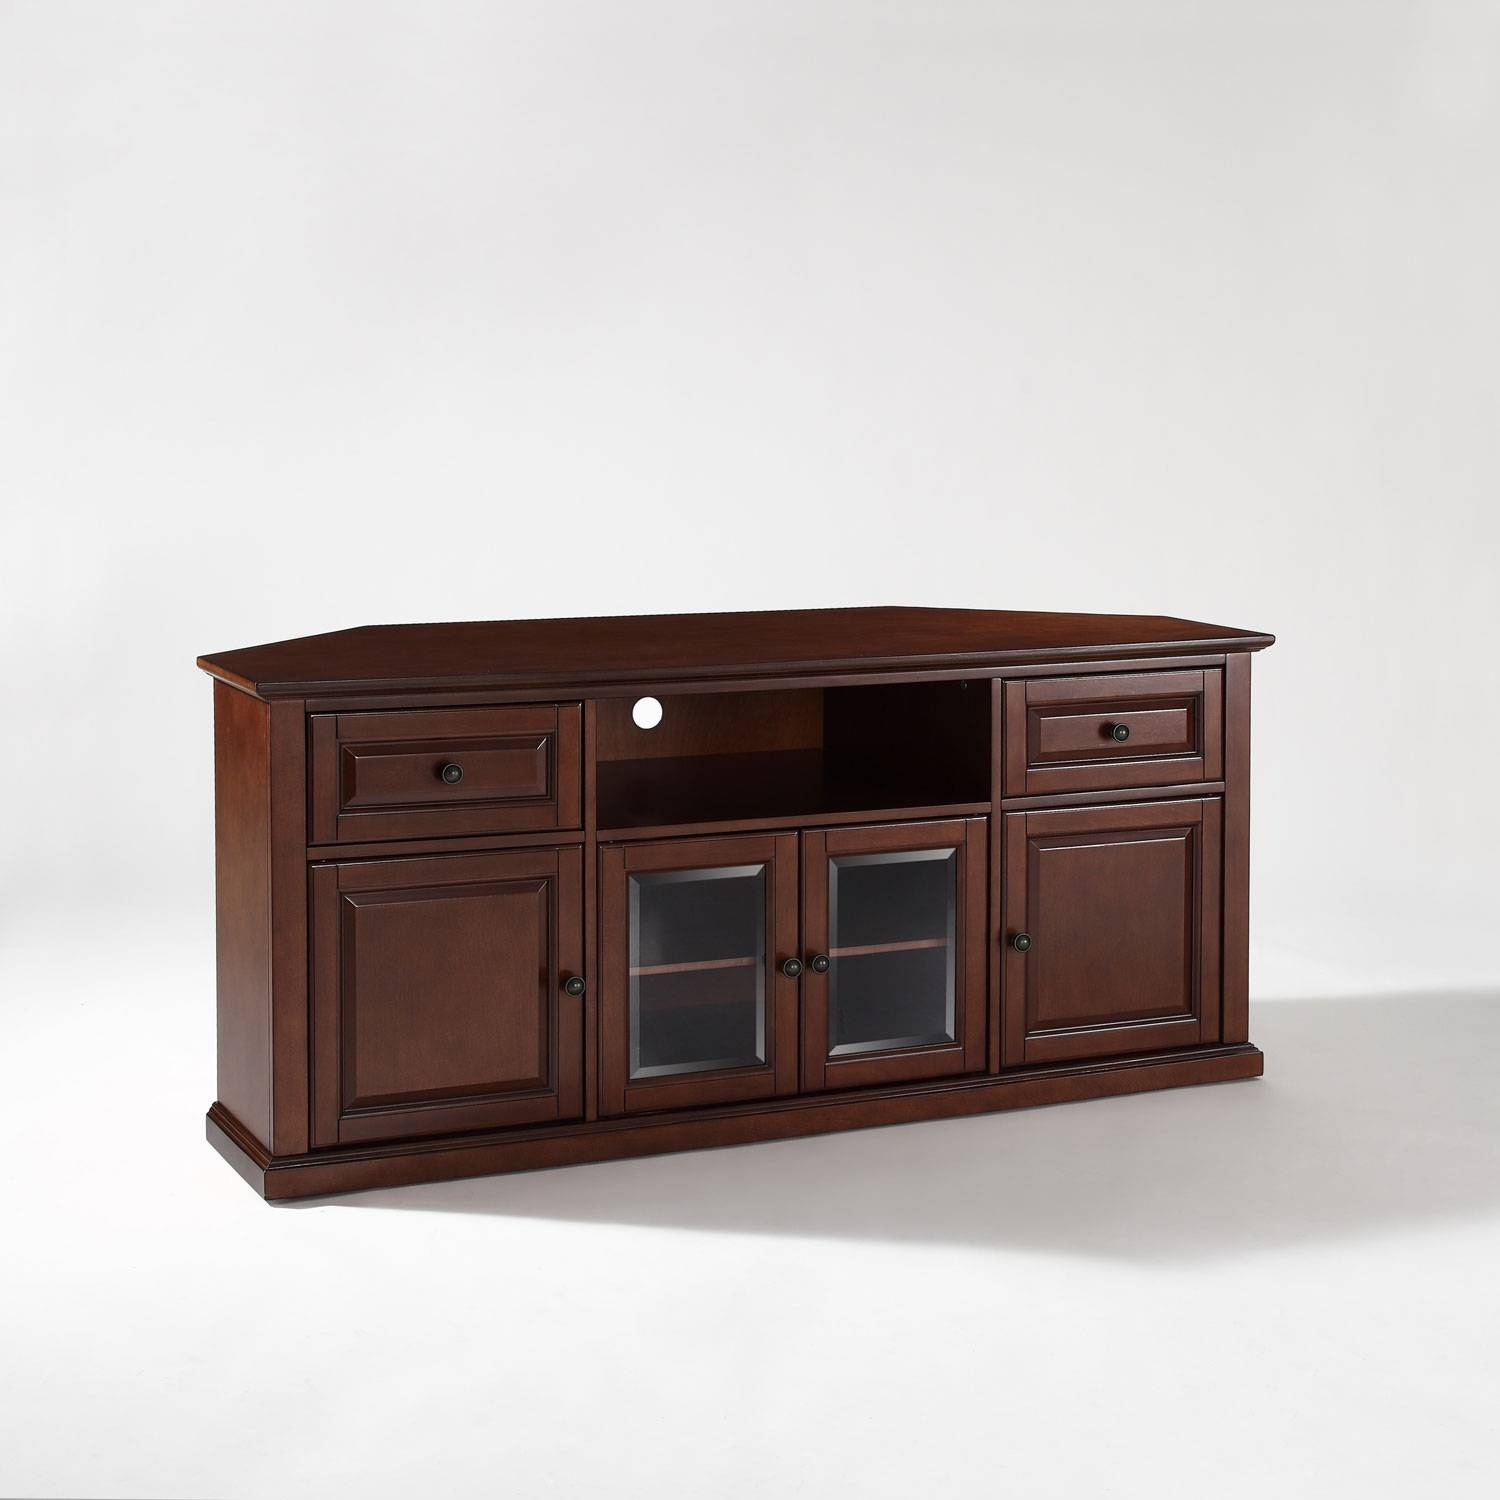 Tv Stands & Cabinets On Sale | Bellacor Intended For Small Oak Corner Tv Stands (View 14 of 15)